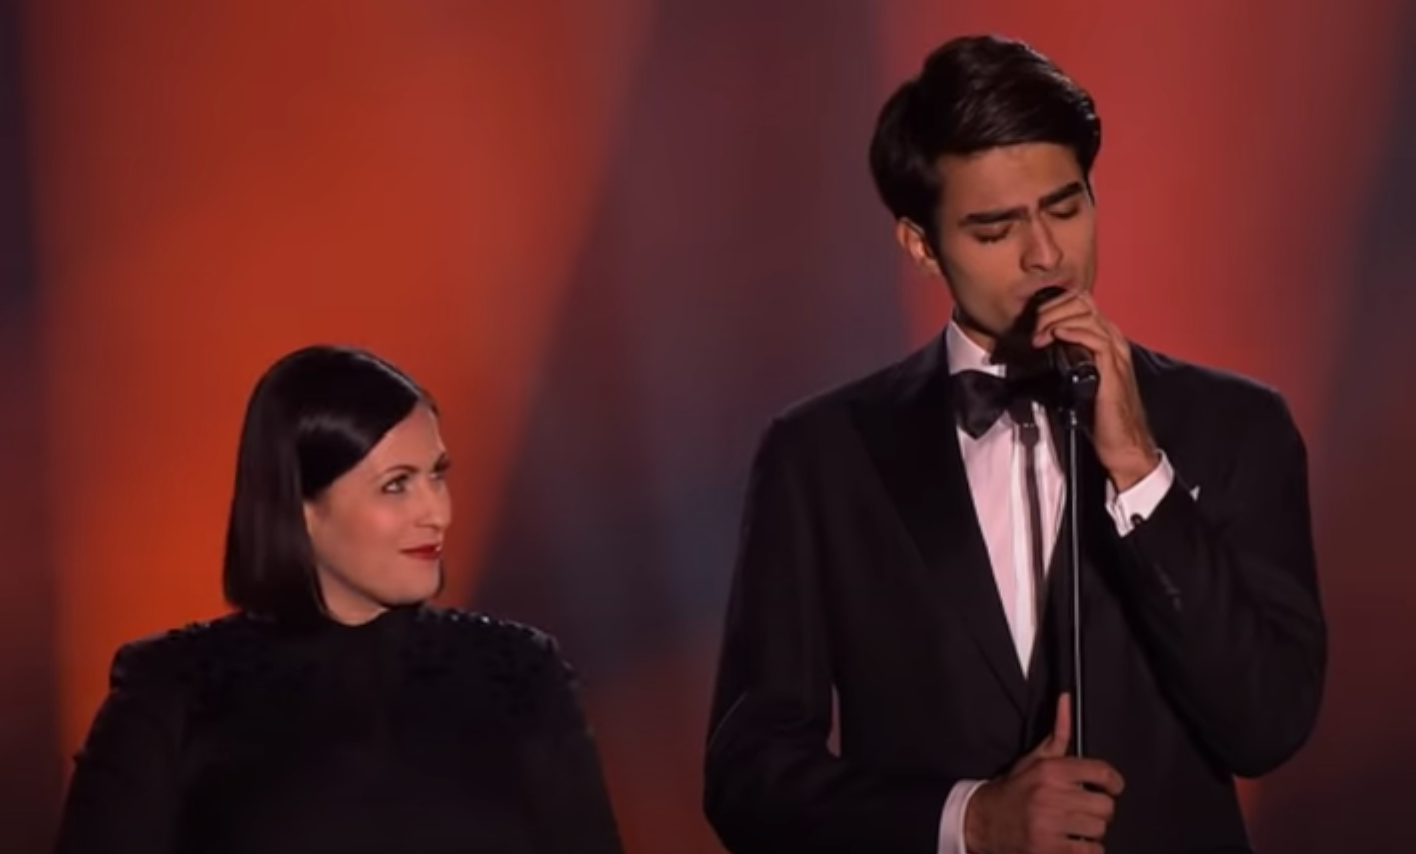 Son Of Andrea Bocelli, Matteo Bocelli, Following In Father's Footsteps With Haunting Elvis Cover